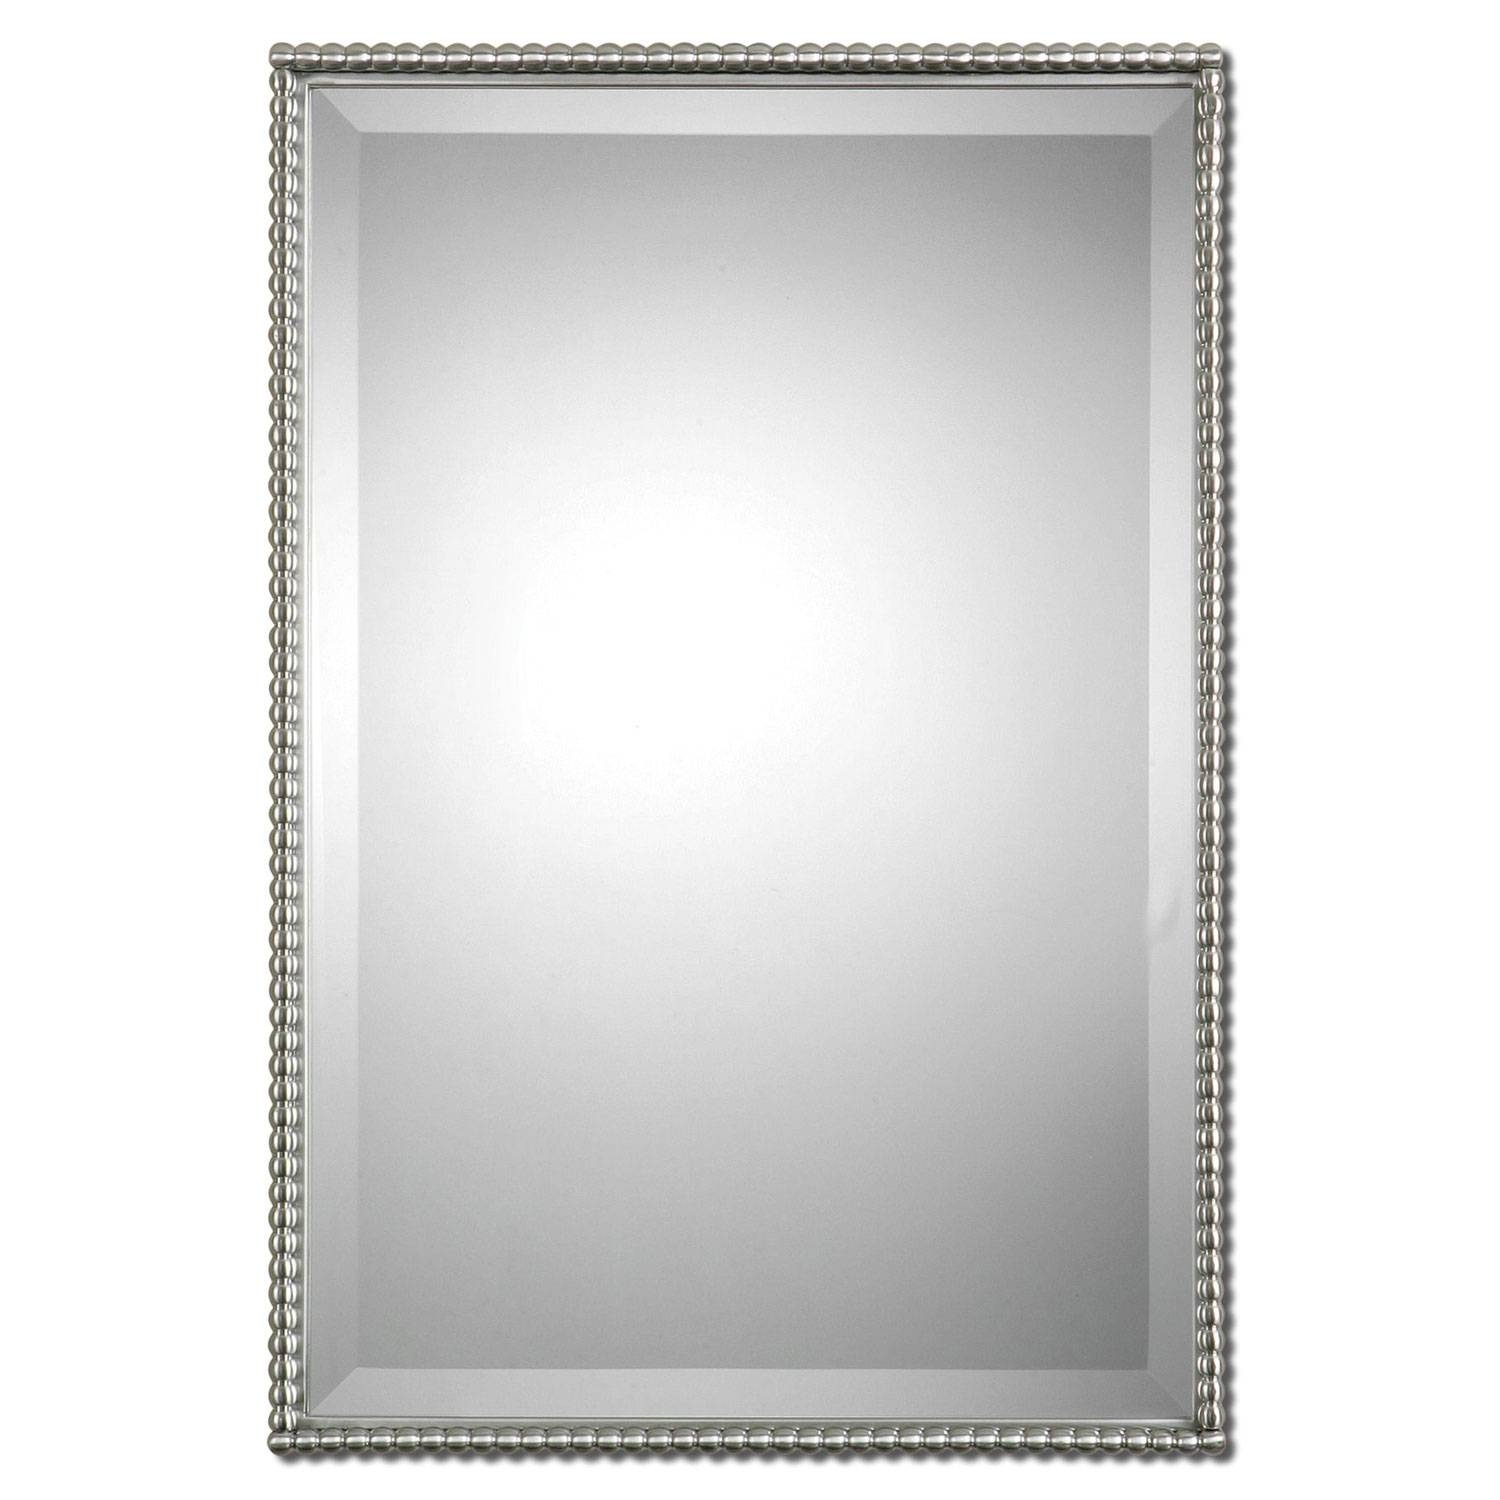 Contemporary Mirrors | Bellacor With Regard To Contemporary Mirrors (View 7 of 25)